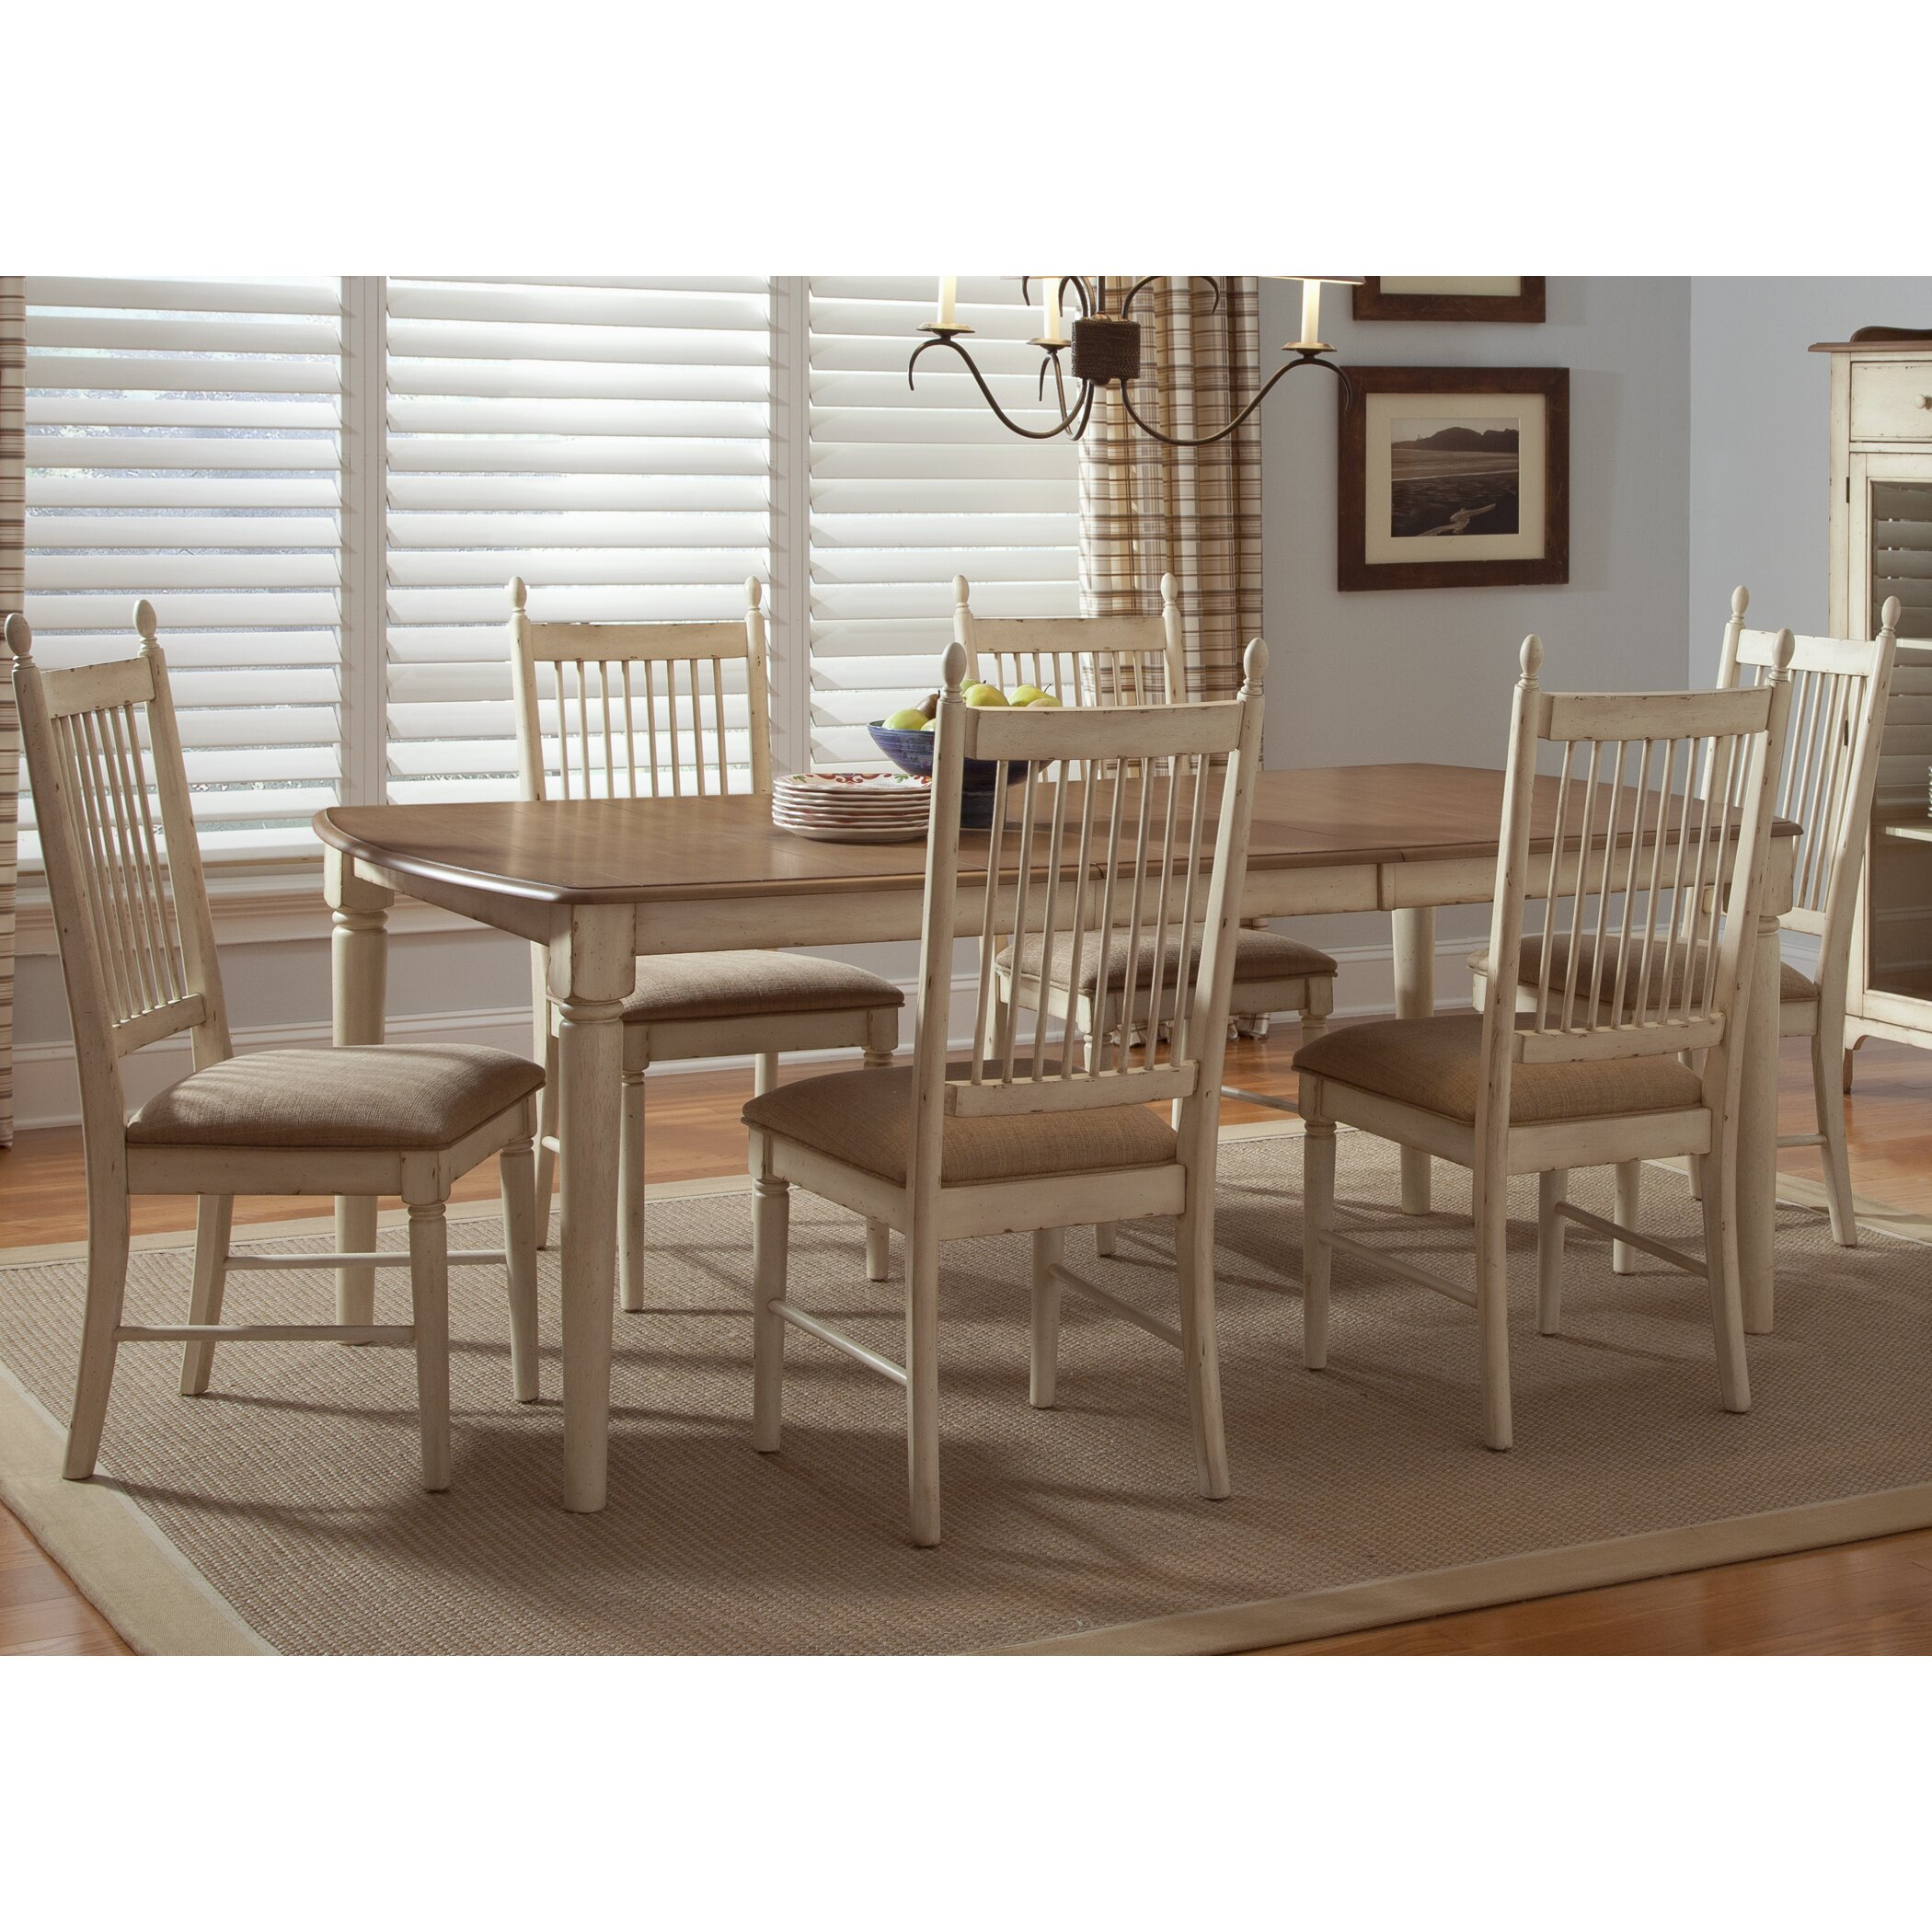 Liberty Furniture Low Country Sand Dining Bench At Hayneedle: Liberty Furniture Cottage Cove Extendable Dining Table